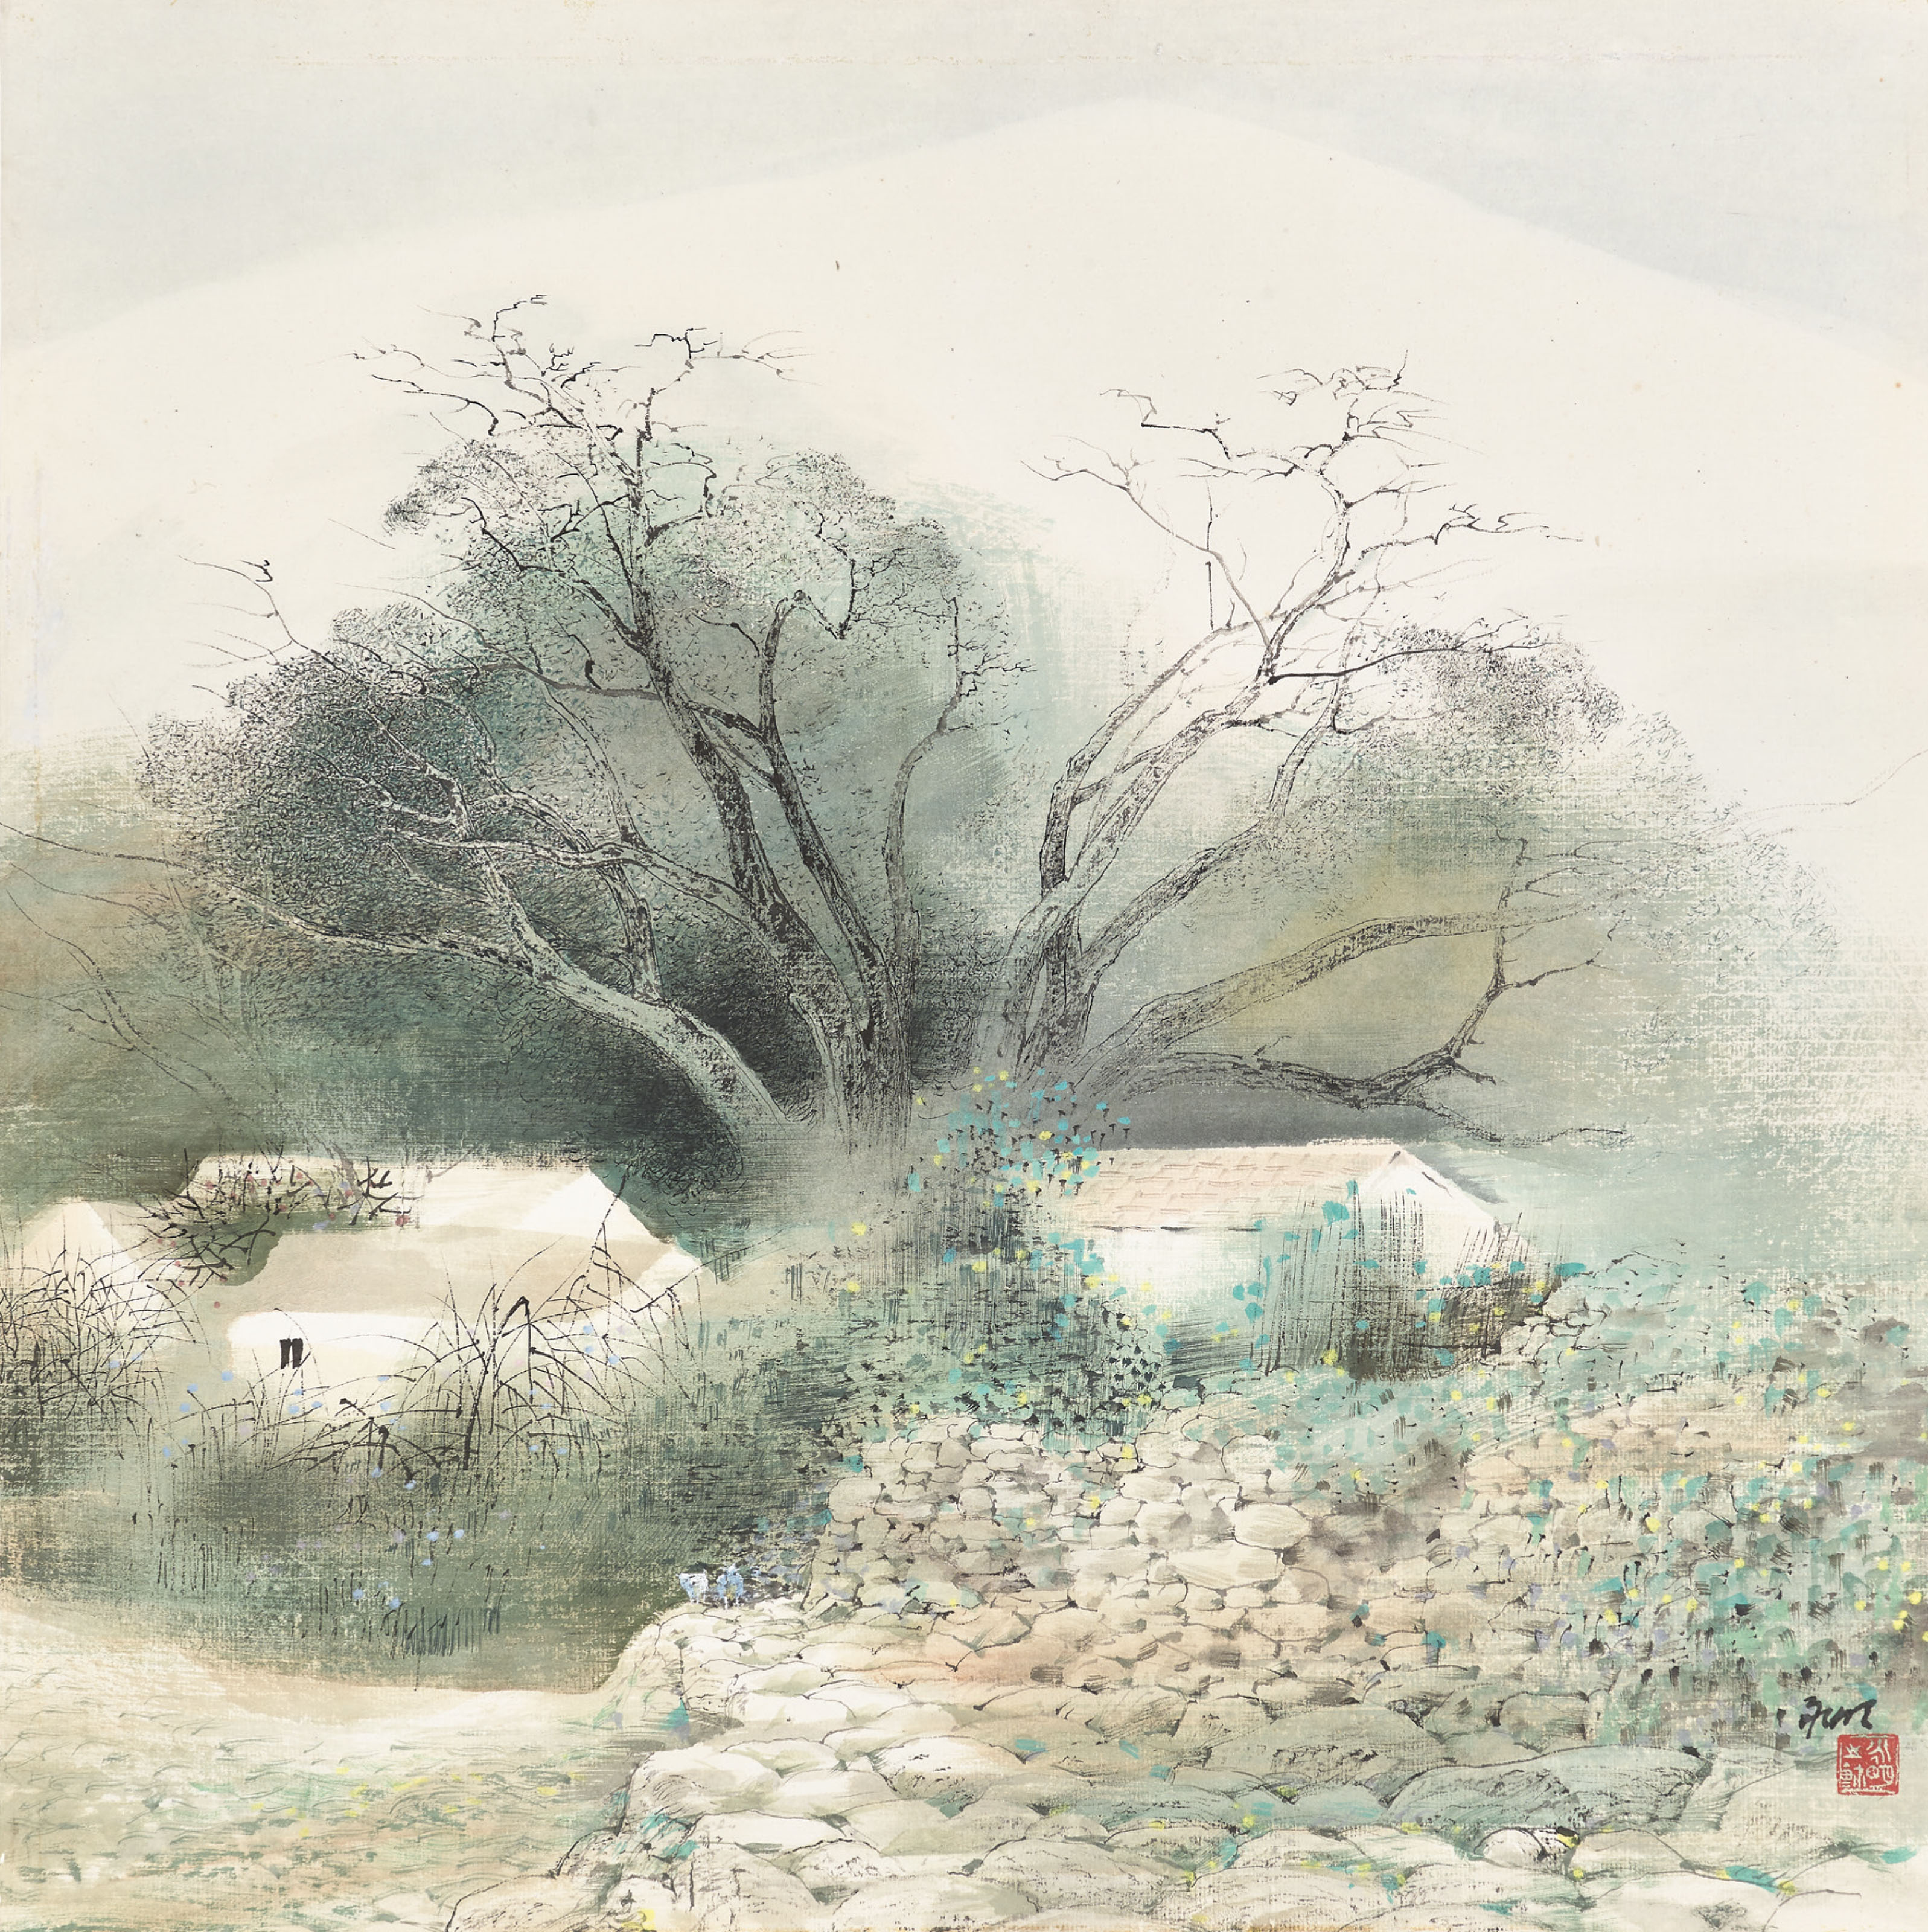 Village with an Old Tree